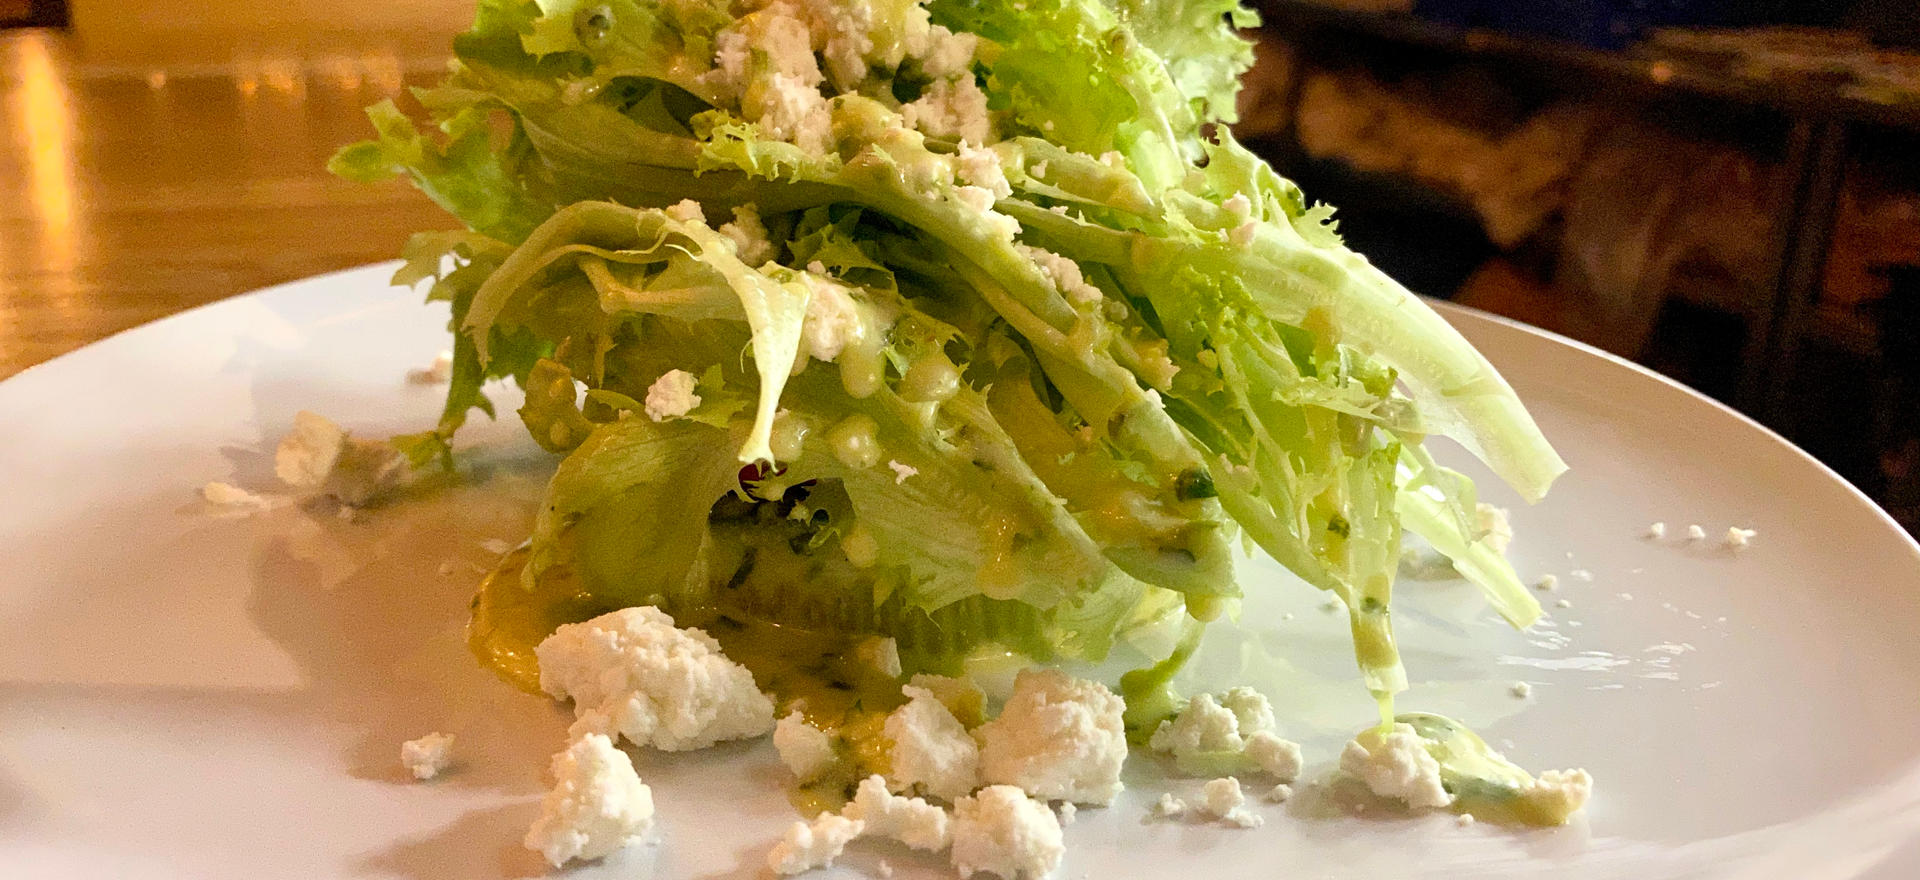 Winter Butter Lettuce Salad with Roasted Squash, Cucumbers, Radish and Goat Cheese